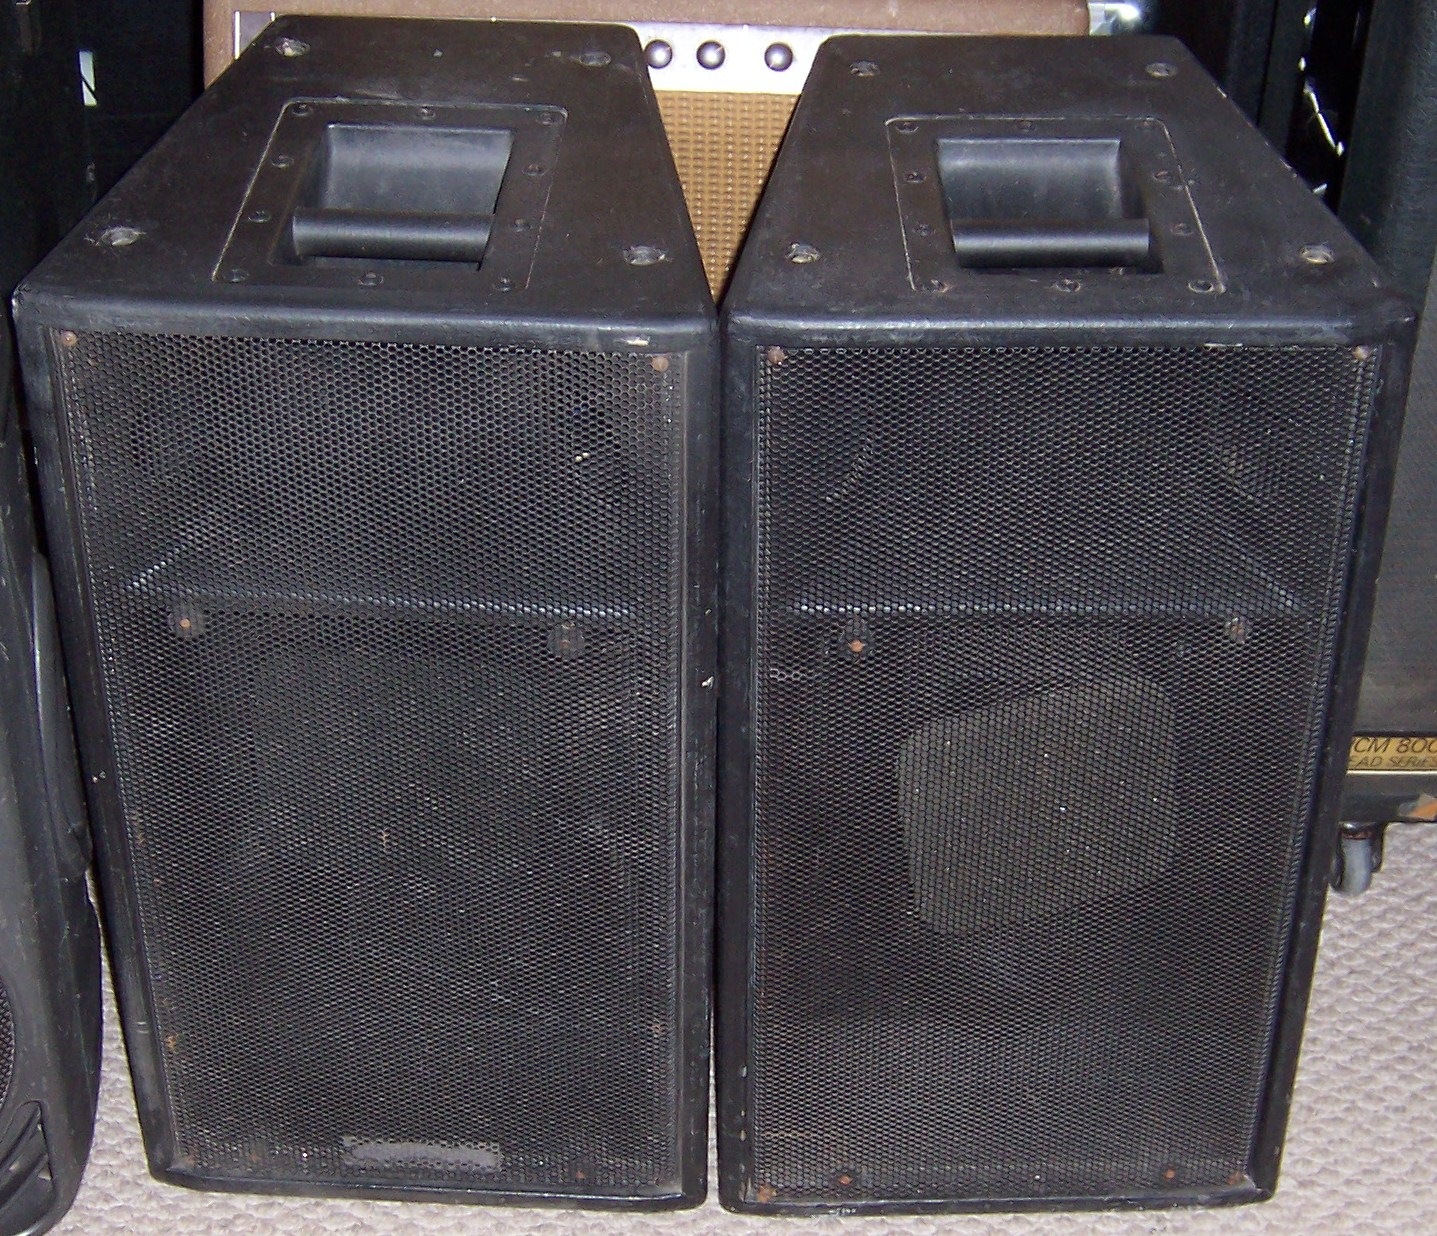 Find Used Seismic Audio Pair Speaker Cabinet Cabinets Shop Every Loudspeaker Thump Eliminator Community Sls 920 P A Sound Reinforcement Axeshop Inc